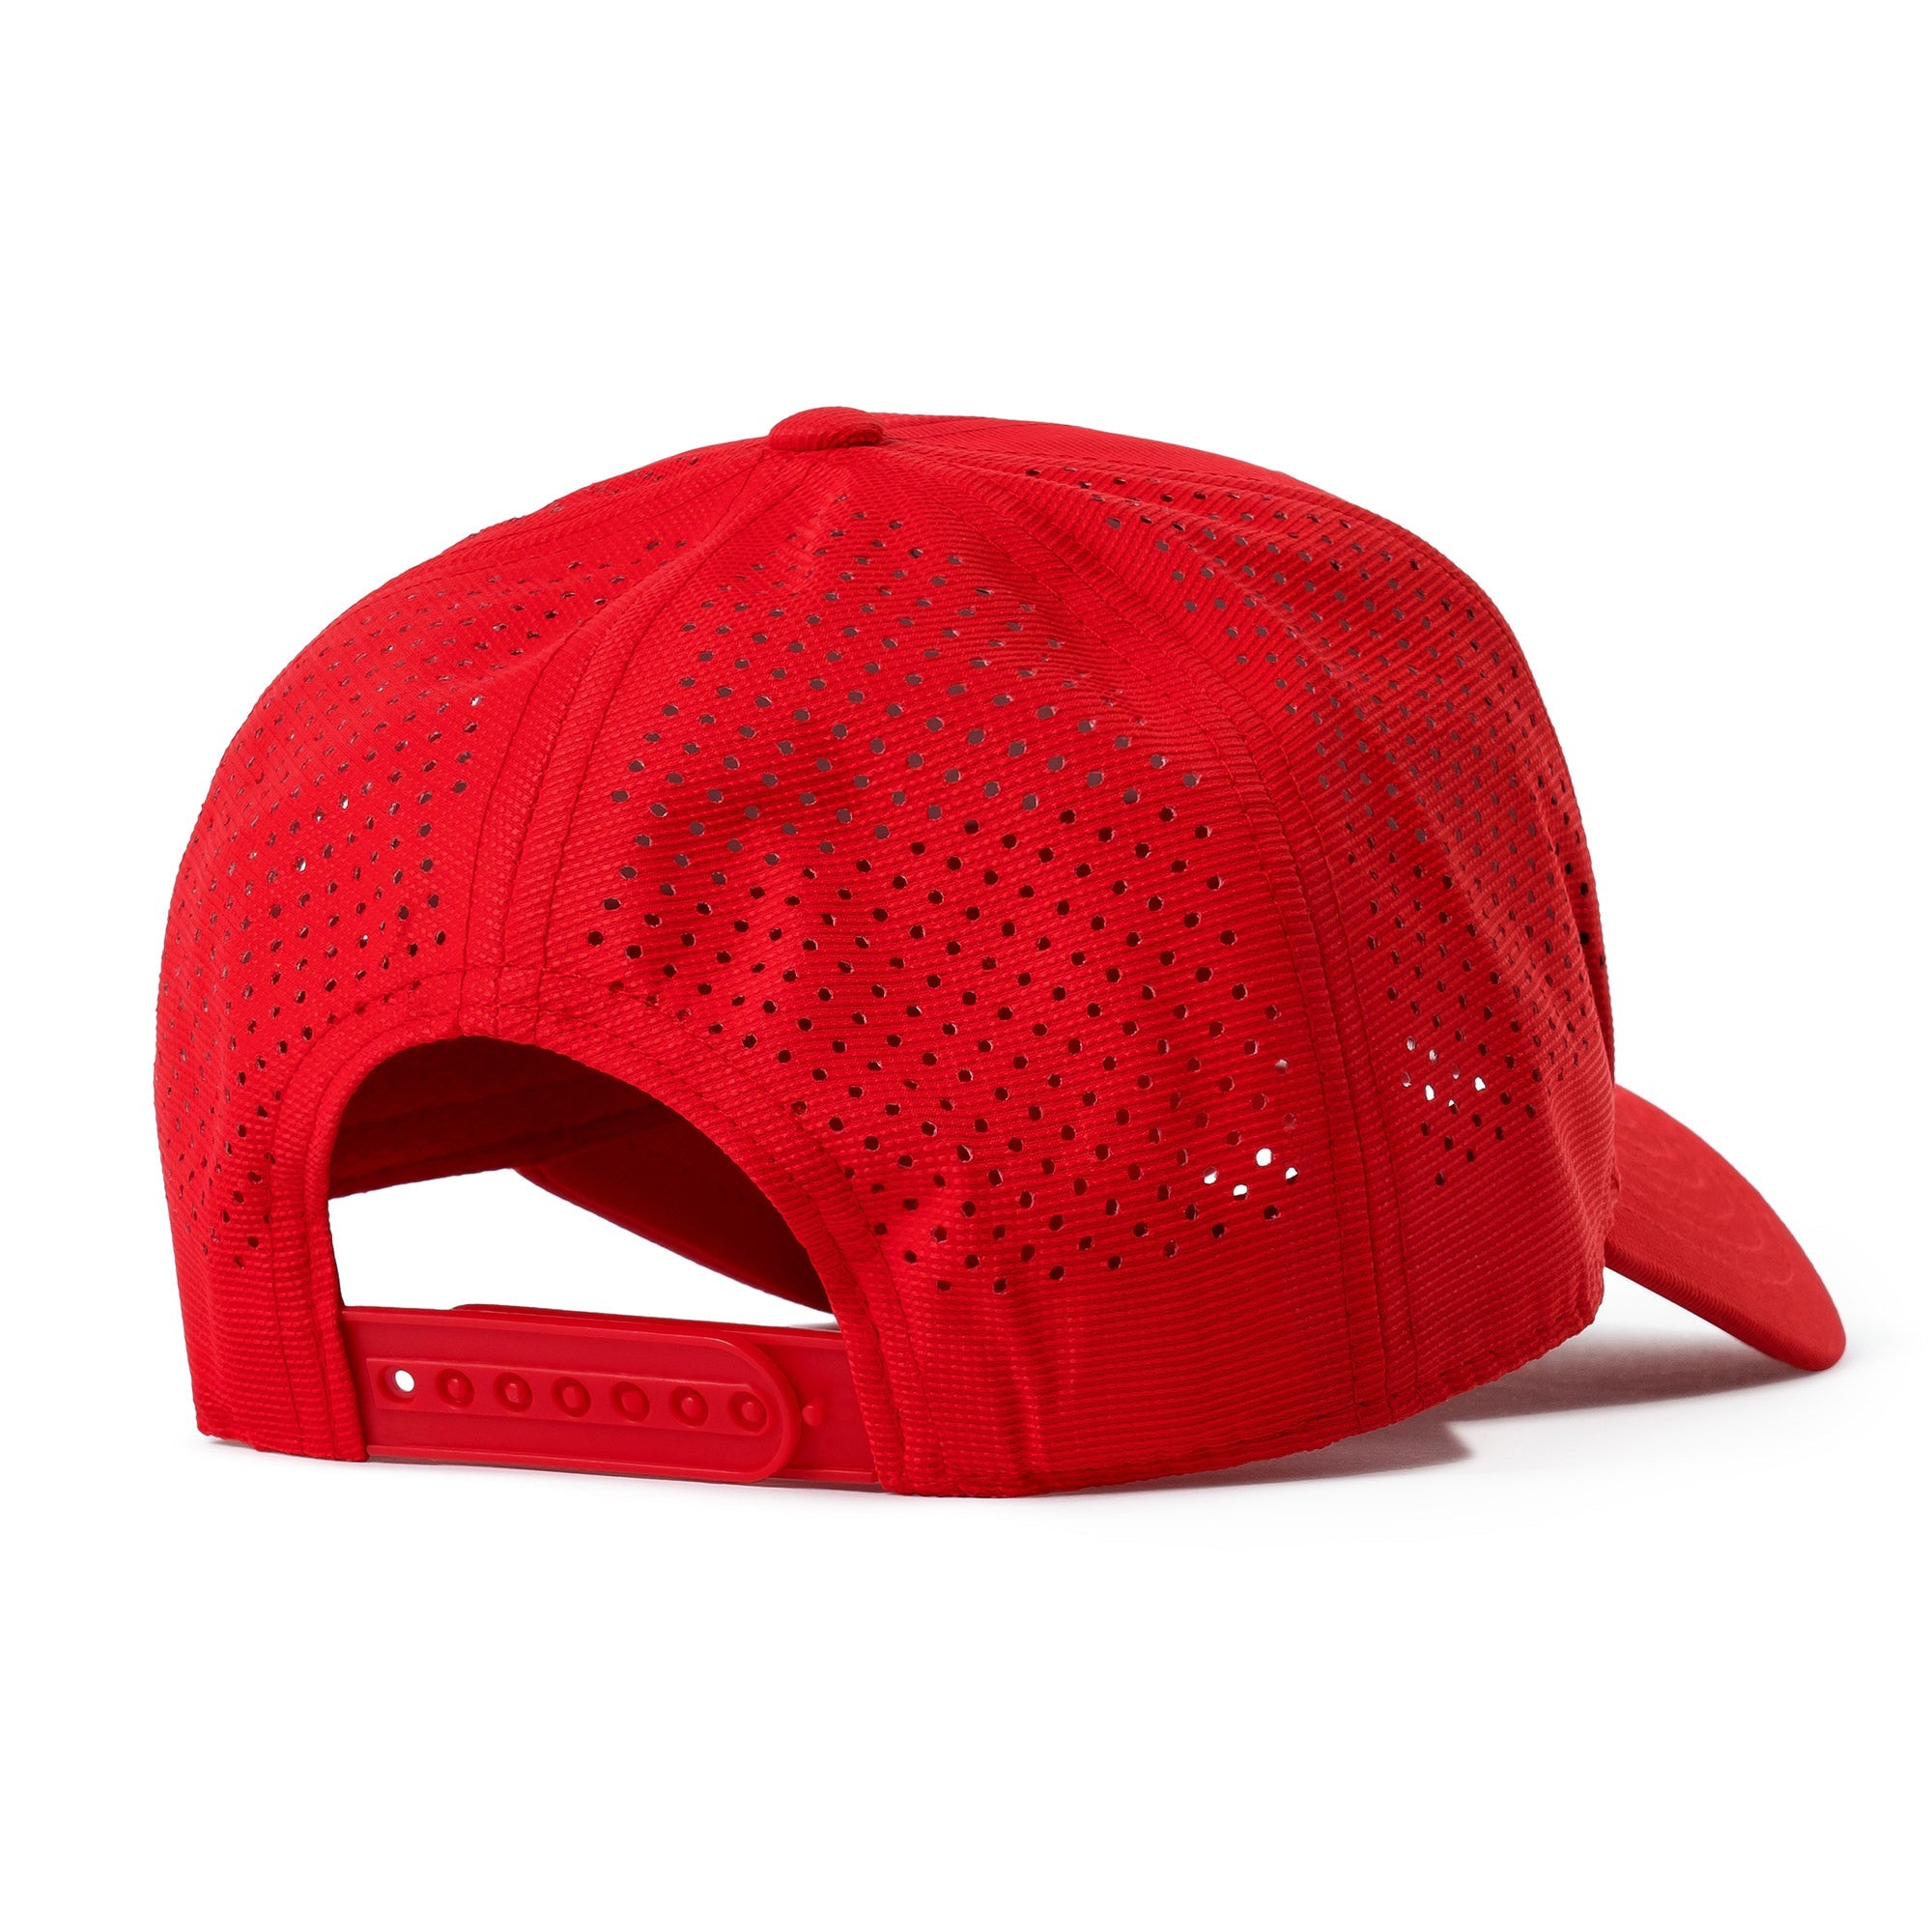 ActiveDry Snapback - Red